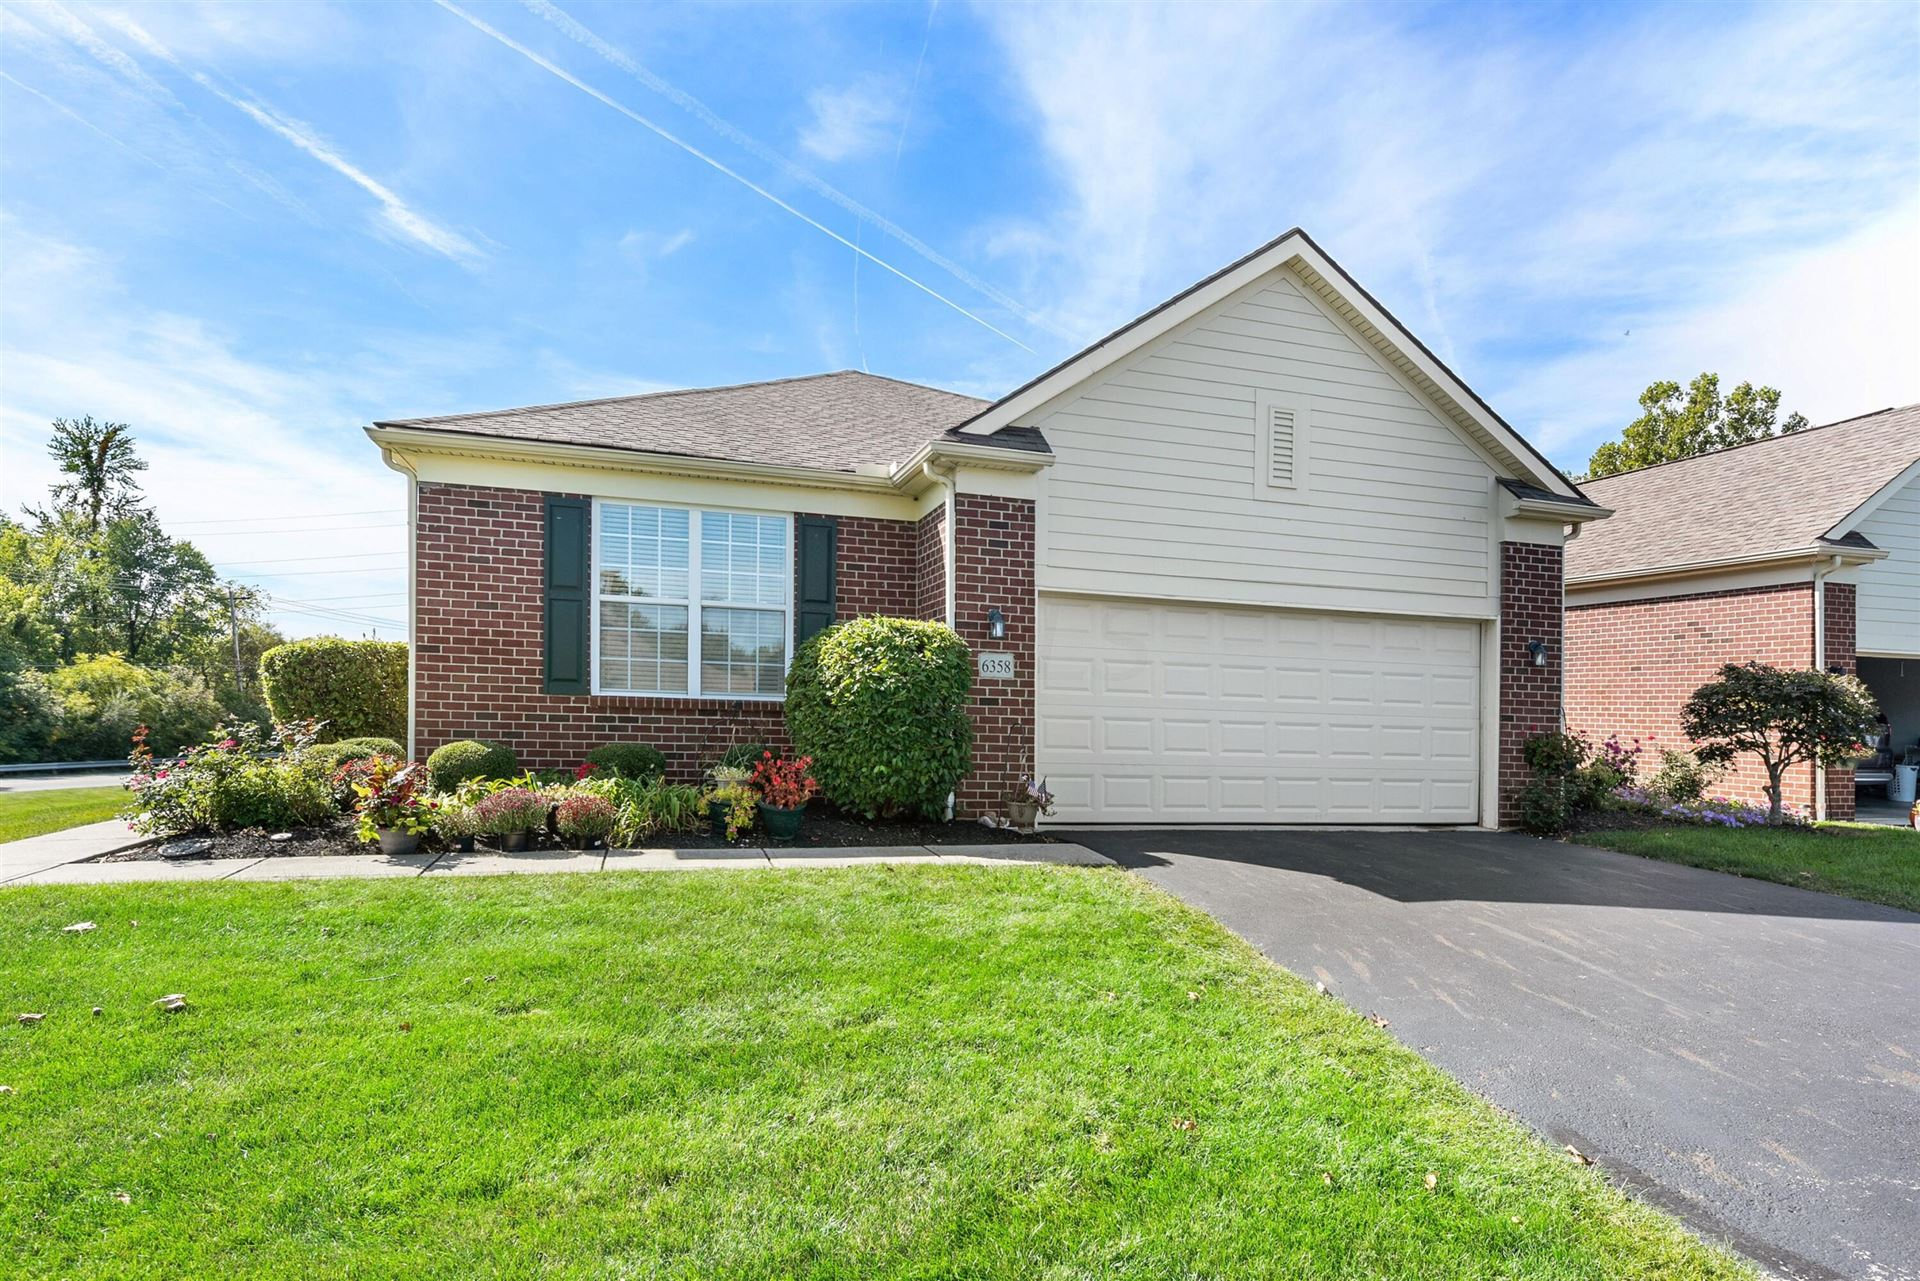 Photo of 6358 Portrait Circle #101, Westerville, OH 43081 (MLS # 221040908)